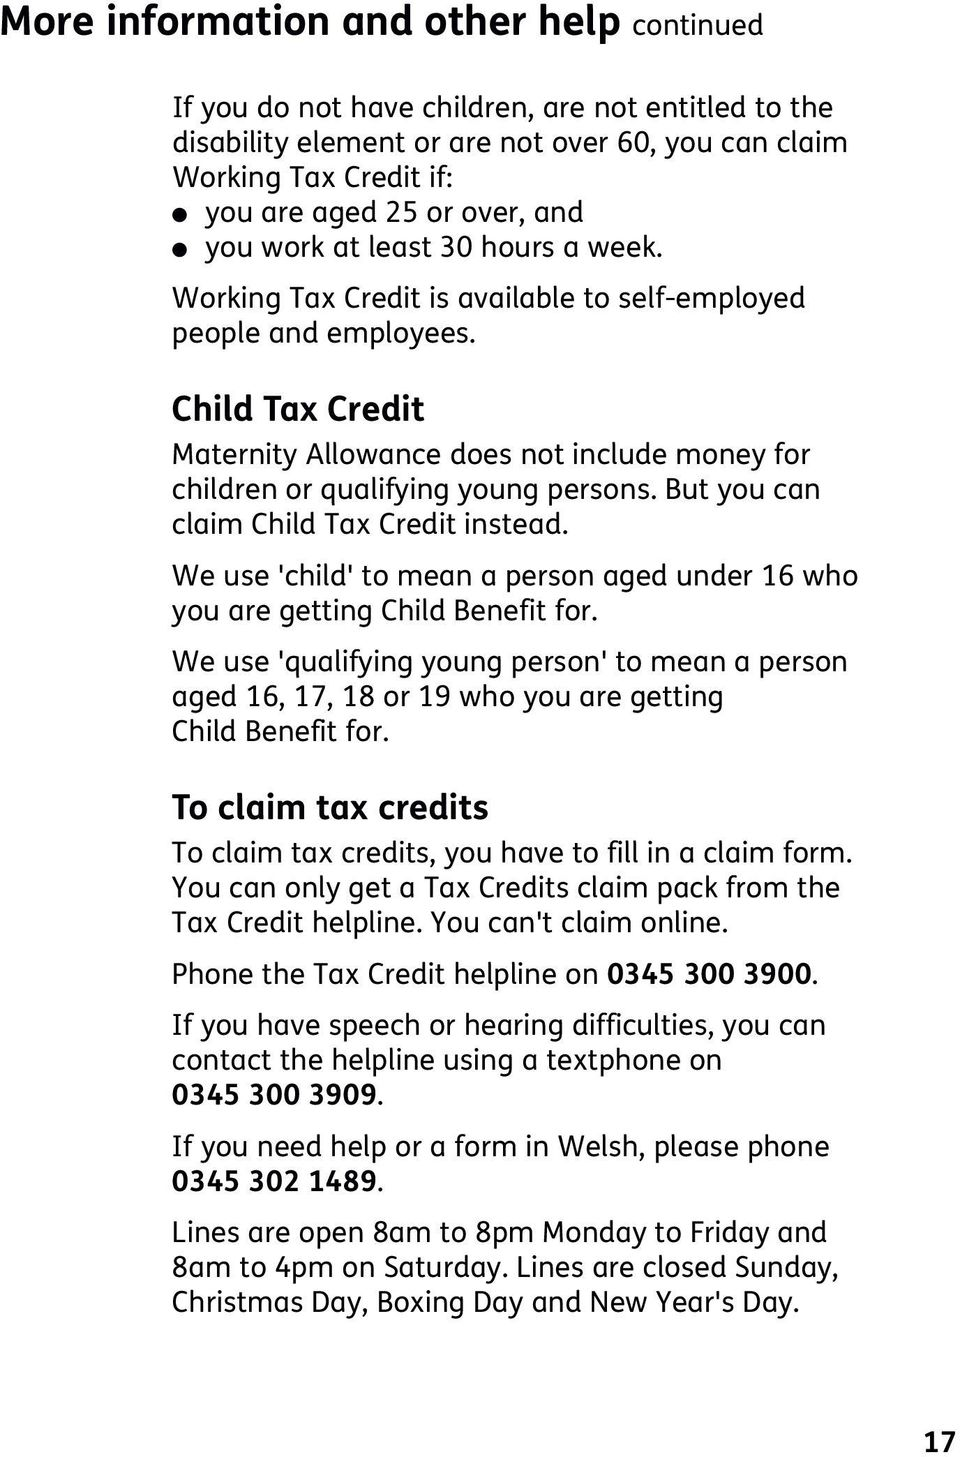 Child Tax Credit Maternity Allowance does not include money for children or qualifying young persons. But you can claim Child Tax Credit instead.